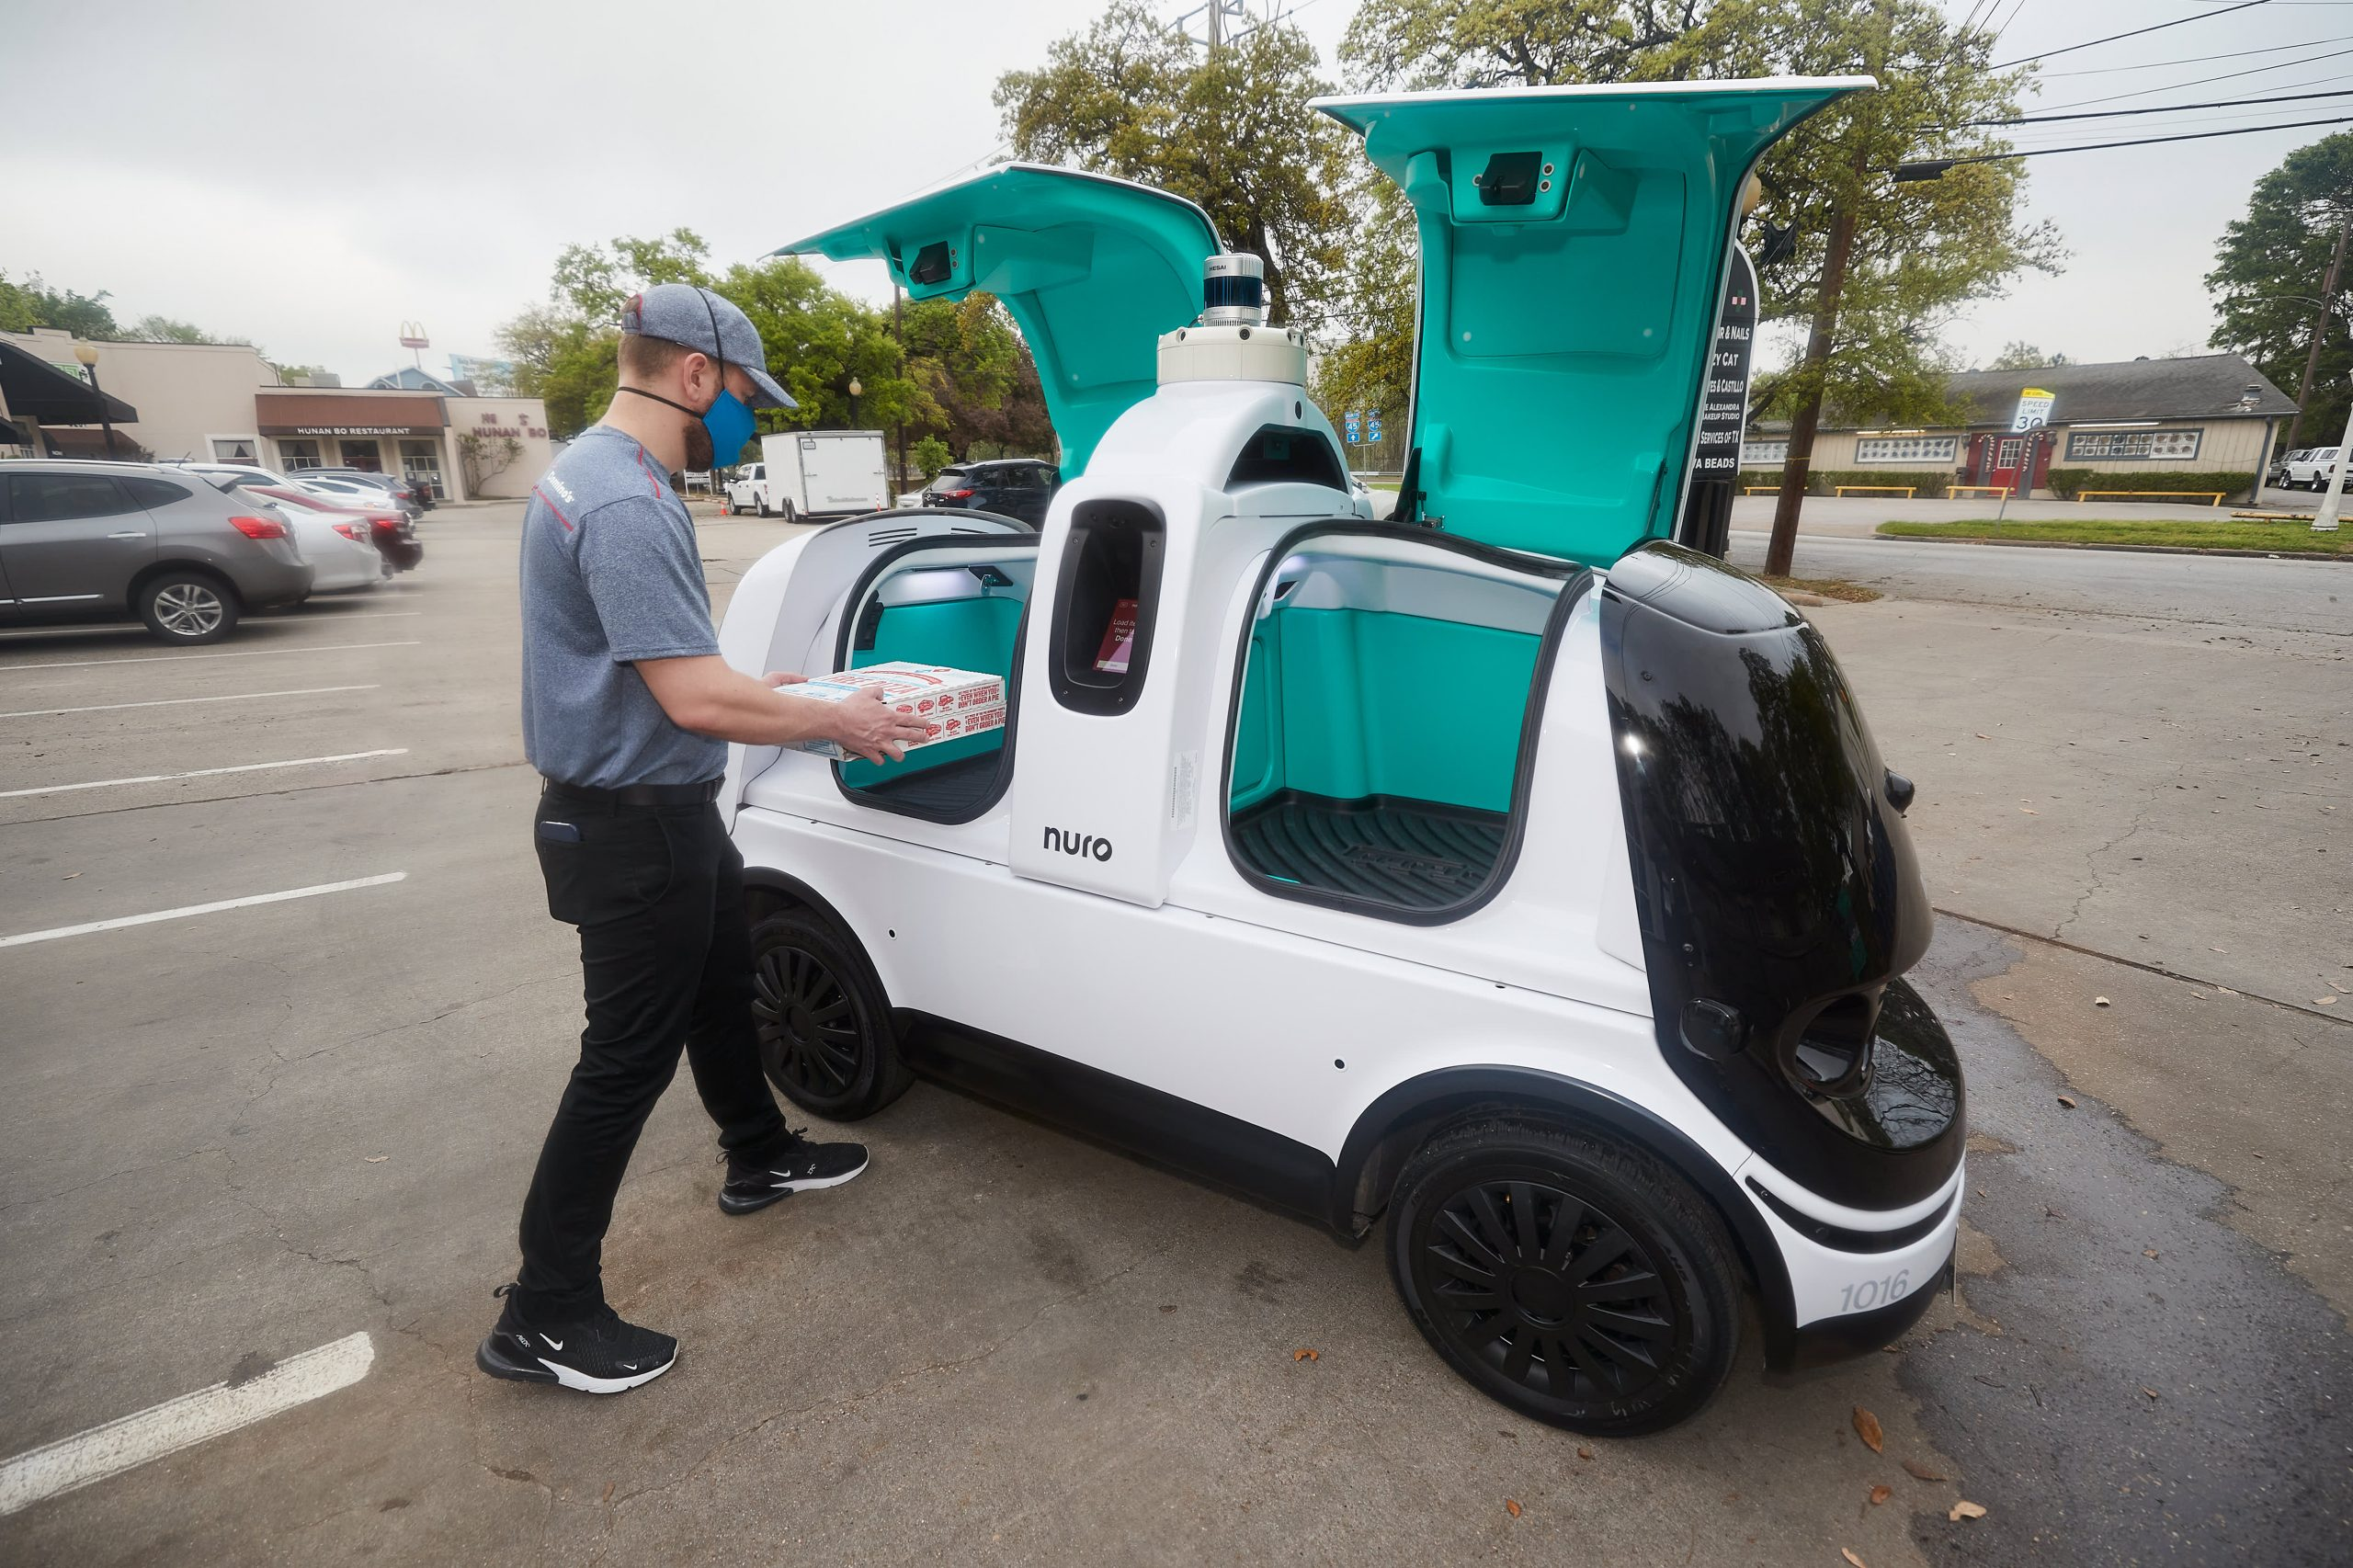 Domino's Pizza pilots driverless delivery with Nuro in Houston